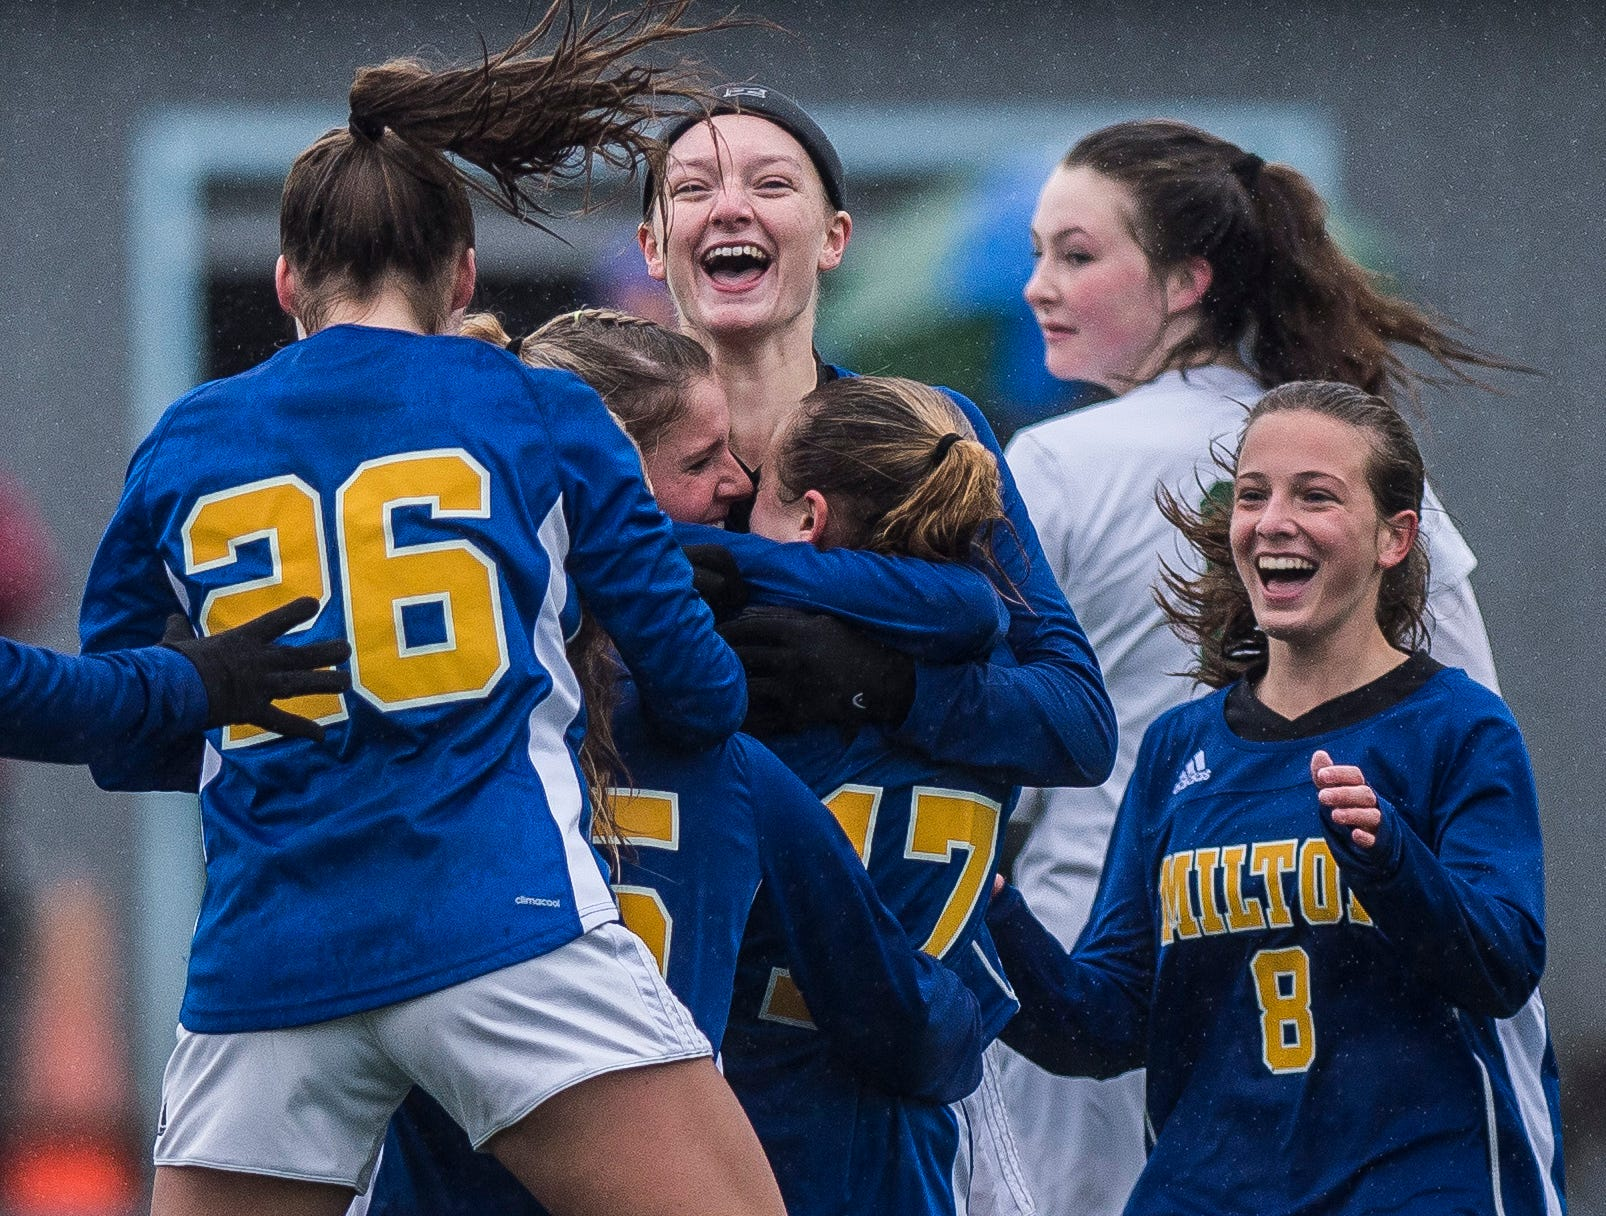 Milton celebrates their first goal, tying the game at 1-1, during the Div. 2 Vermont State girl's high school soccer championship on Saturday, Nov. 3, 2018, at South Burlington High School. Milton won the championship in sudden-death overtime, 2-1.